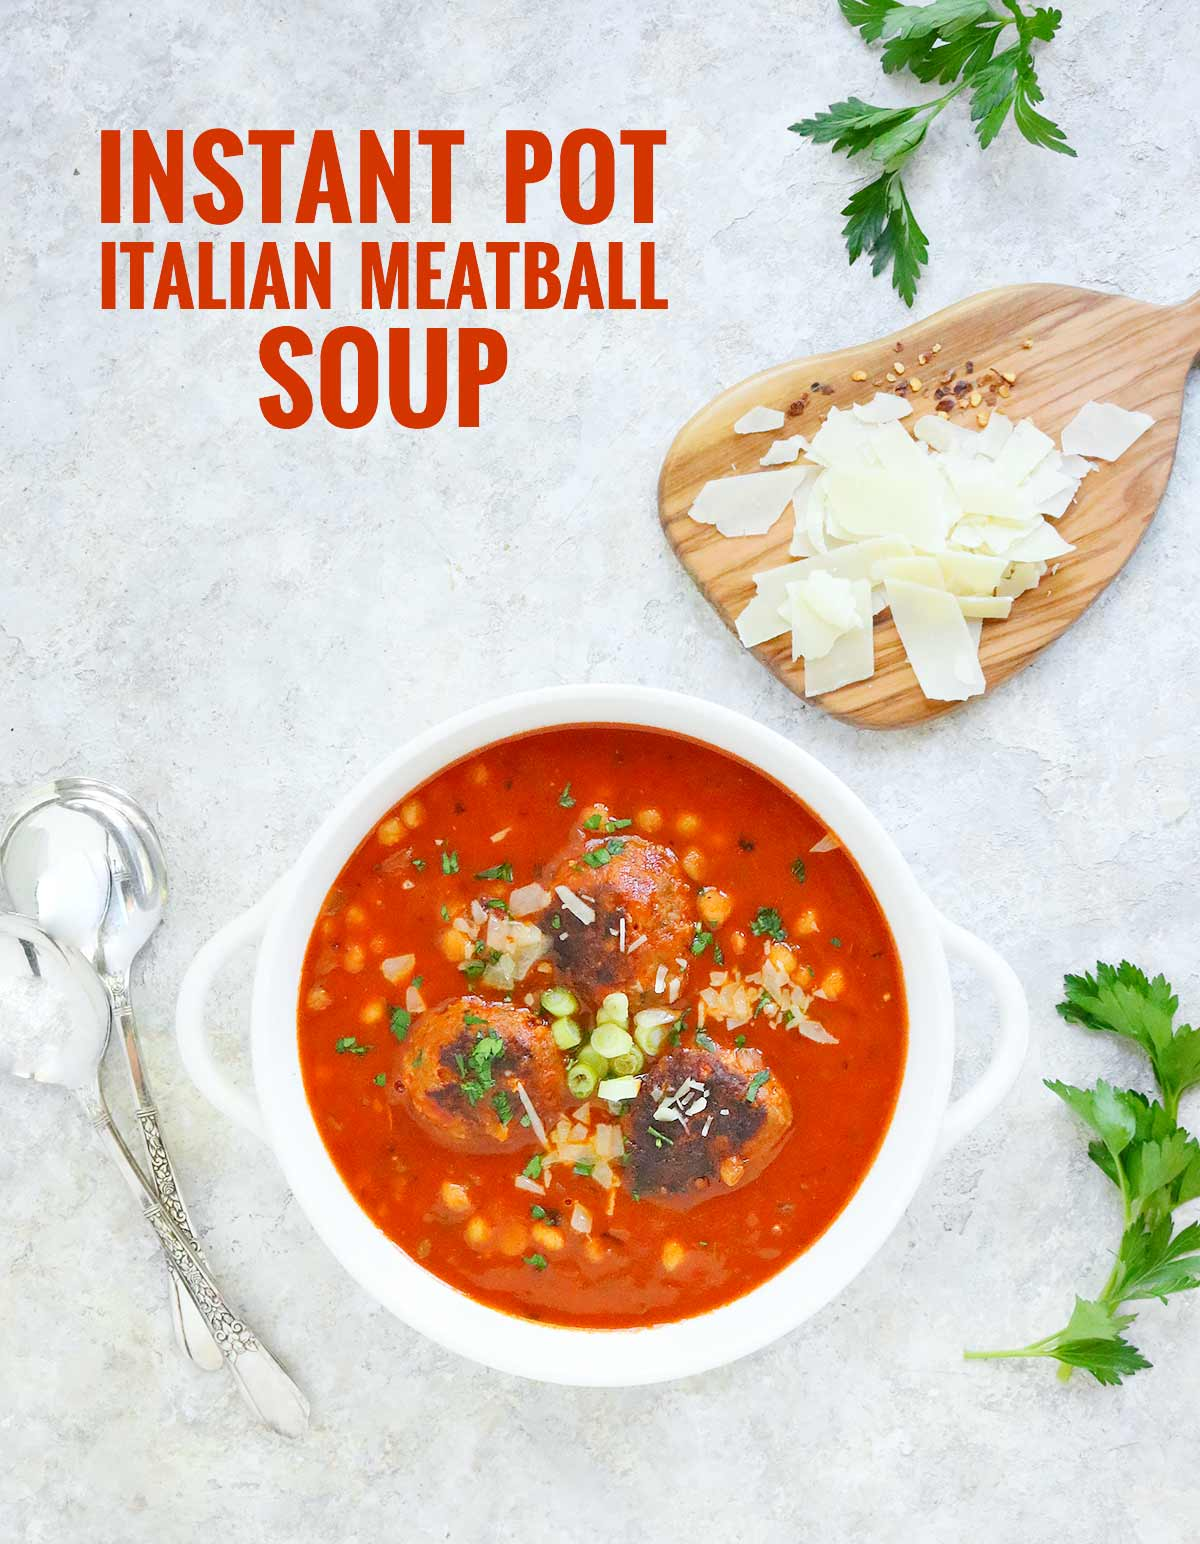 Instant Pot Italian Meatball Soup | Recipe at SoupAddict.com